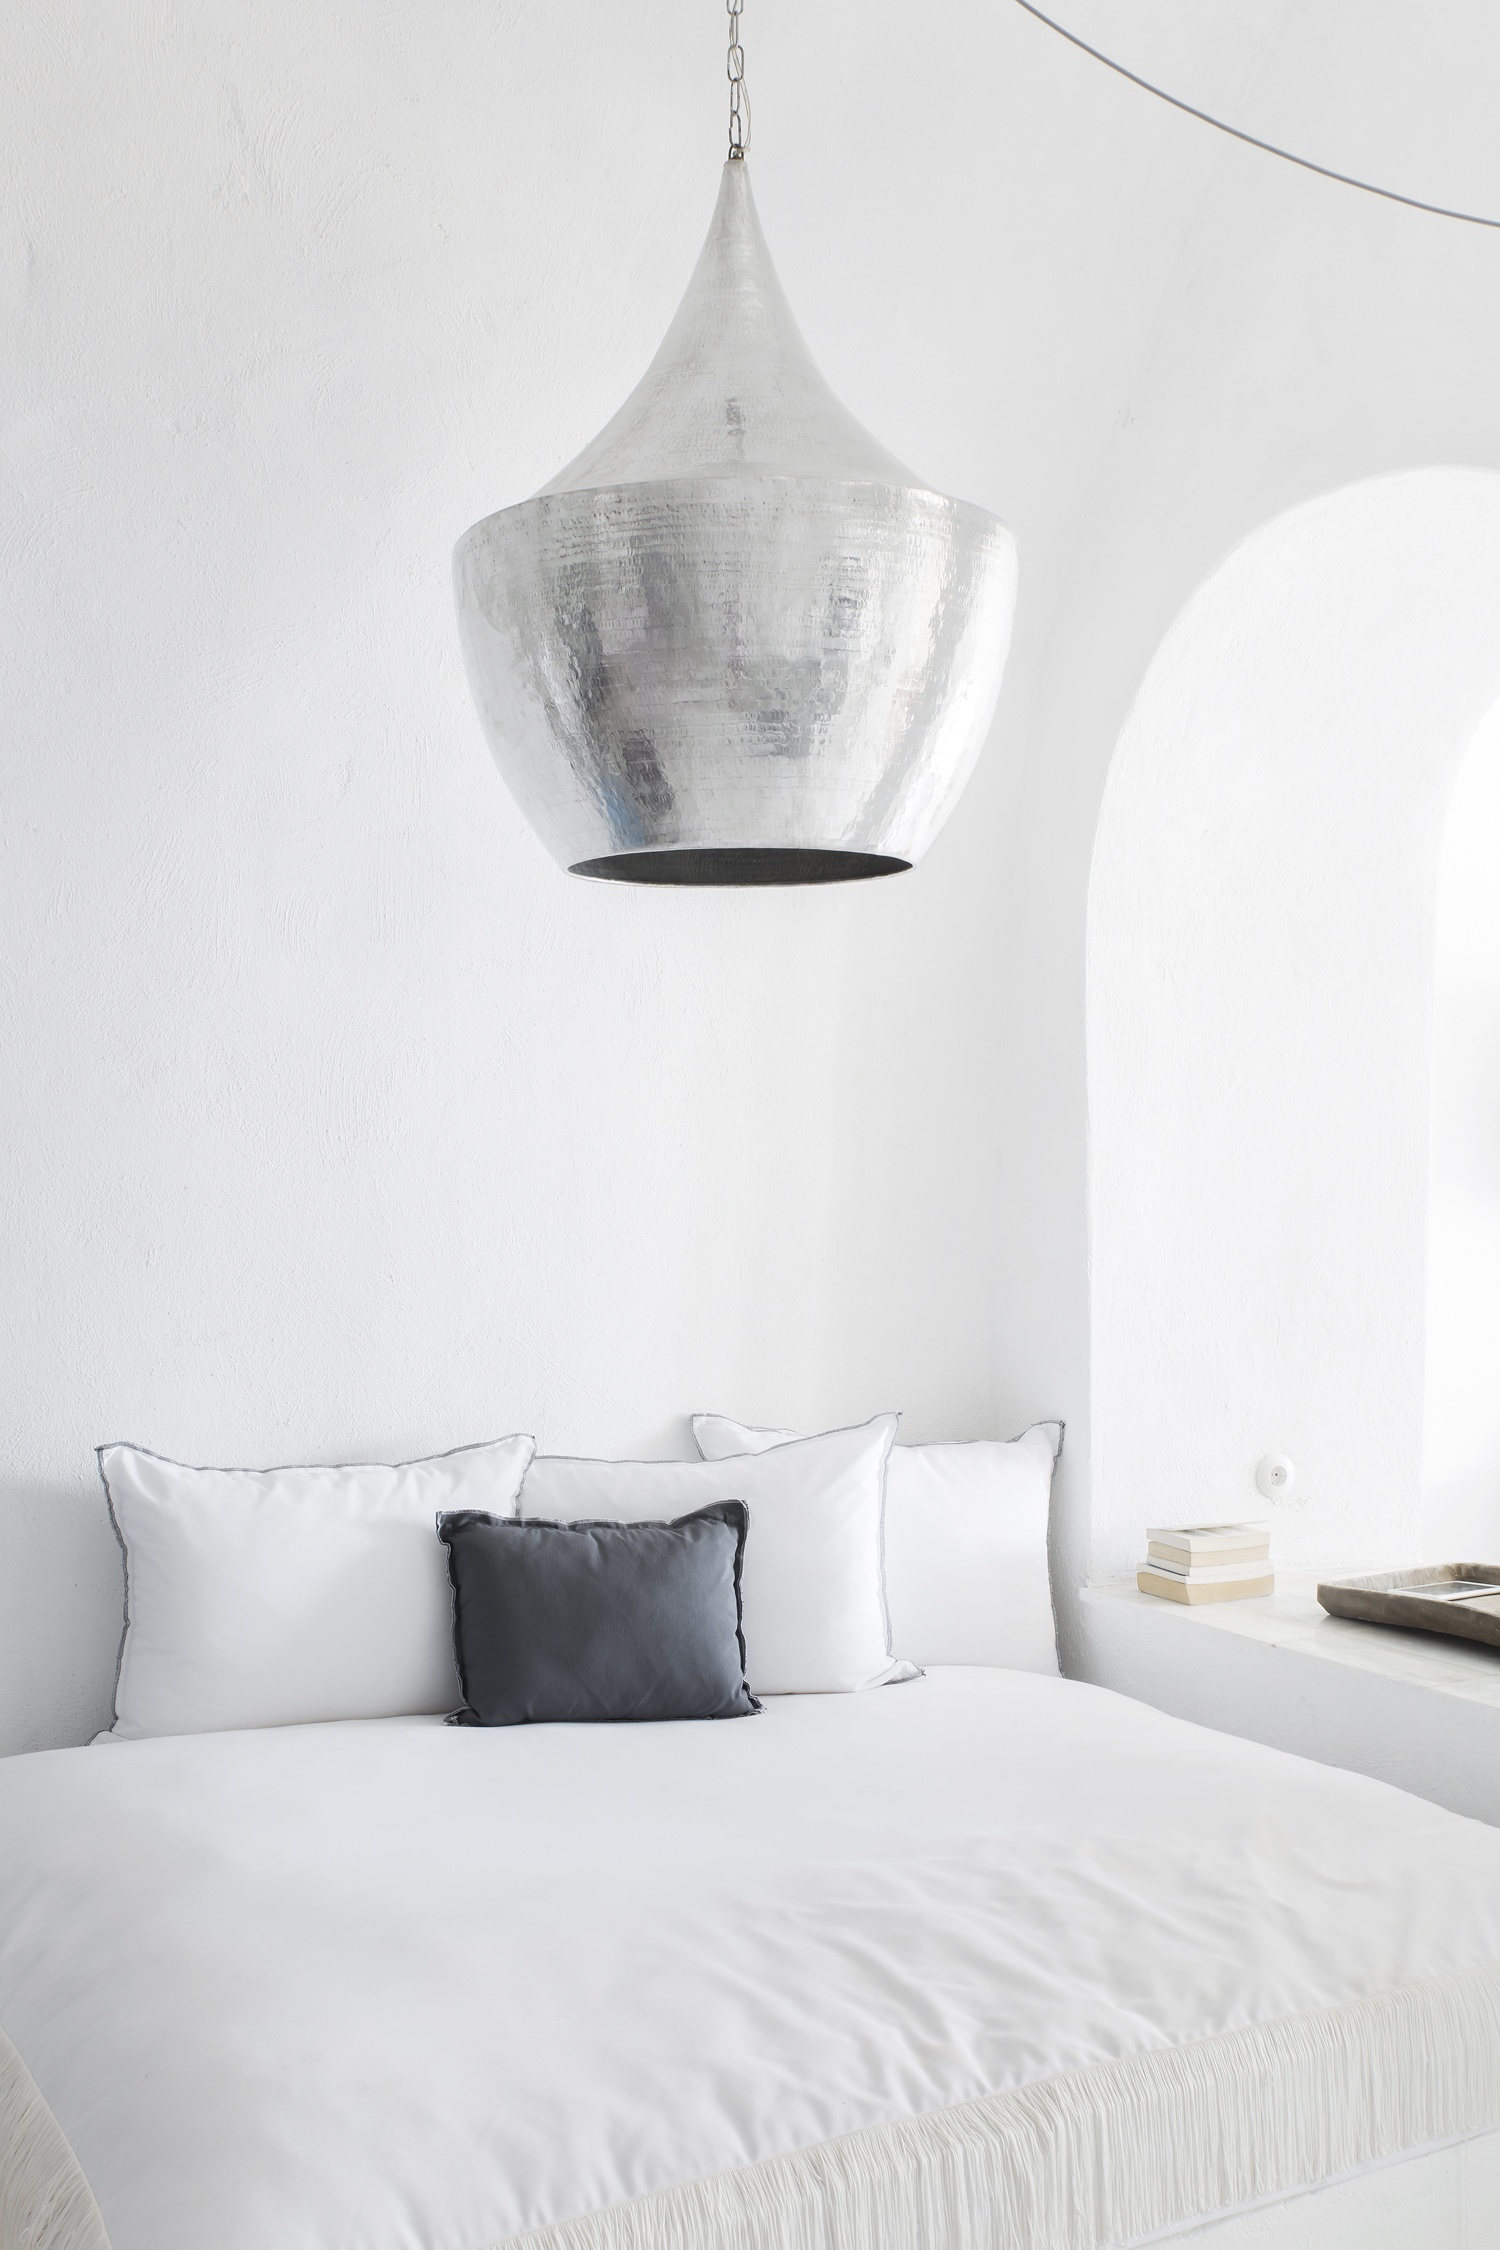 Sophia Suites in Santorini - Photographed by Sara Medina Lind via DesignStudio210